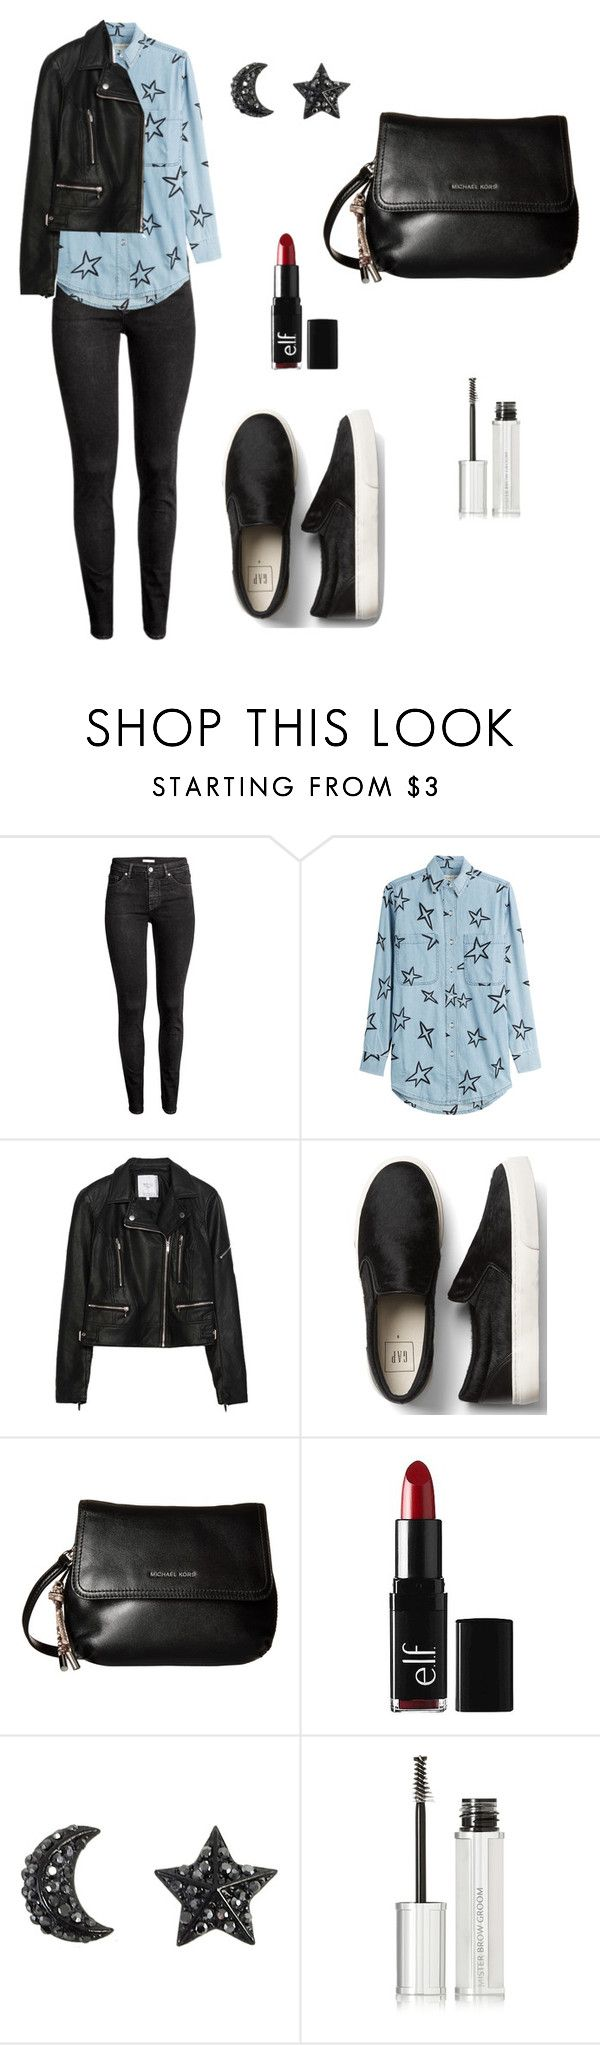 """""""Untitled #390"""" by mariafilomena471 ❤ liked on Polyvore featuring H&M, Être Cécile, Zara, MICHAEL Michael Kors, e.l.f. and Givenchy"""